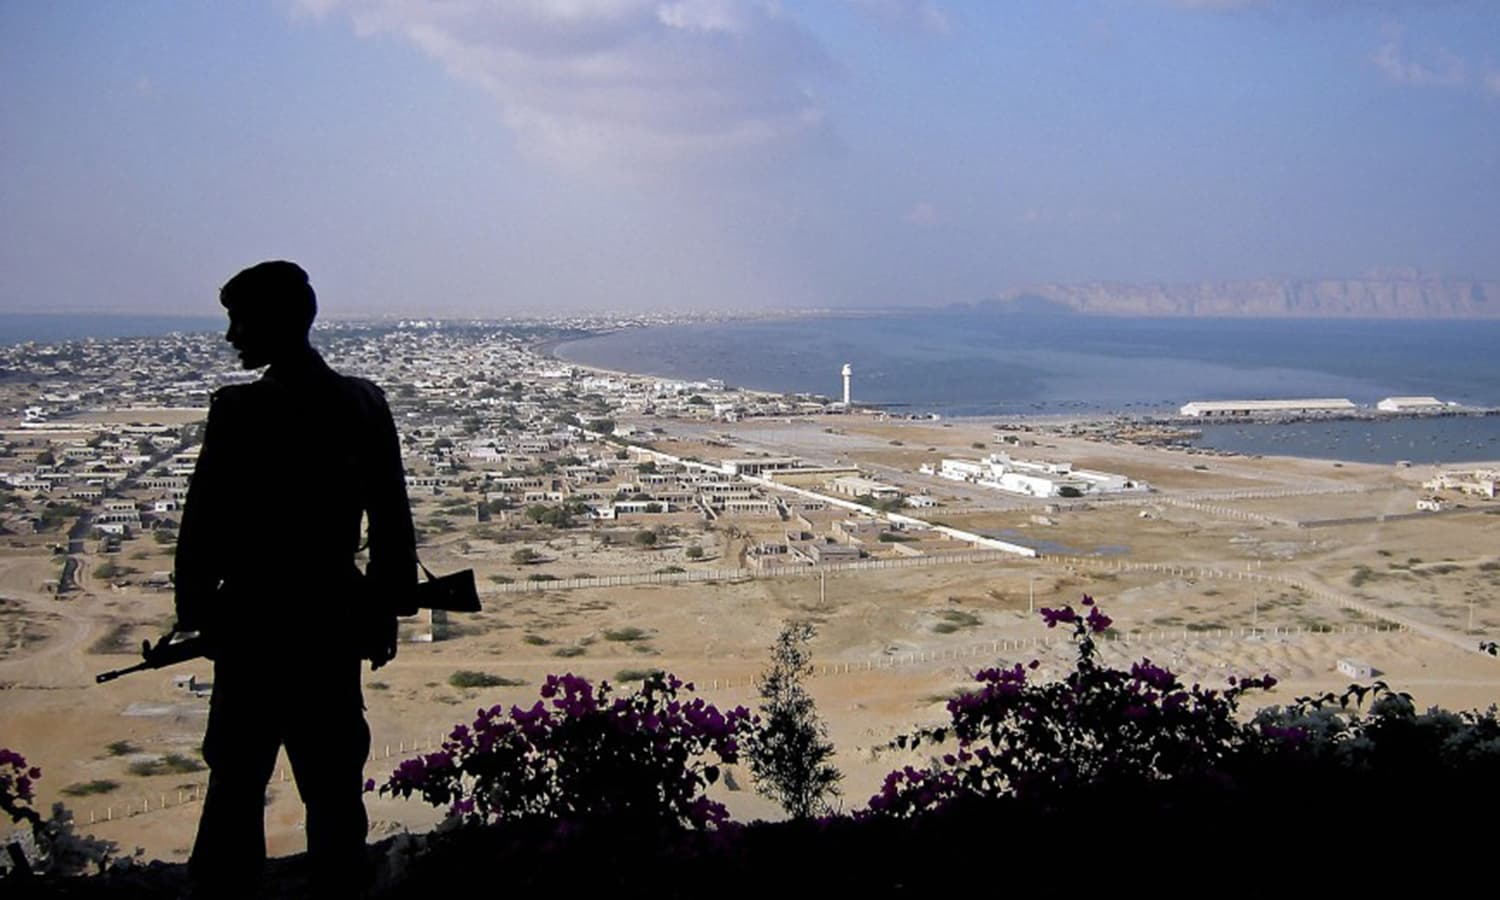 A Pakistani soldier stands on top of a hill in Gwadar. Parts of Balochistan have often been hit by a Baloch nationalist insurgency and also by violence from extremist groups. (Picture: The Guardian)